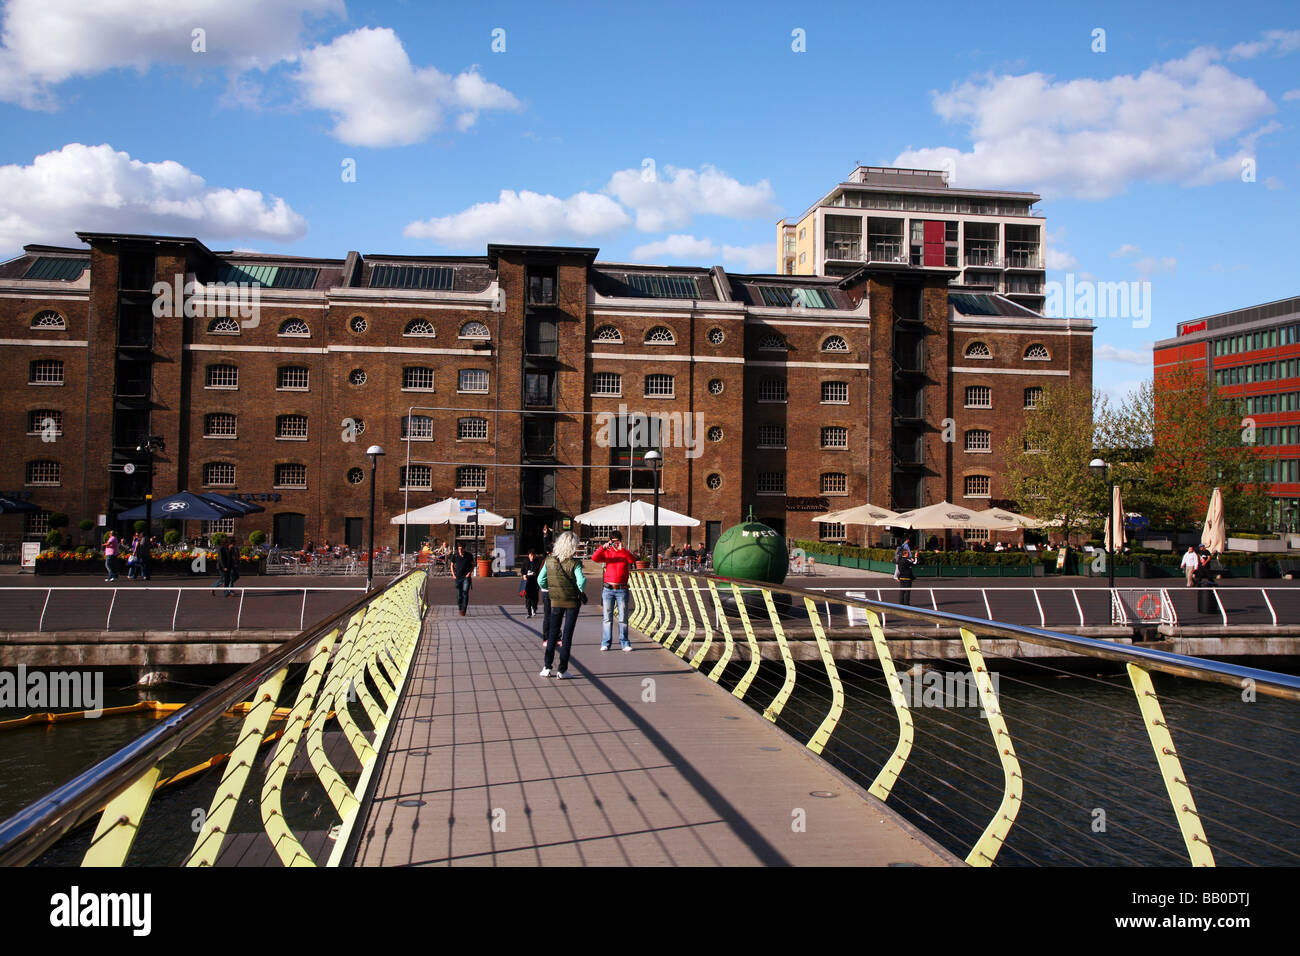 Popular restaurant area at Canary Wharf in London Docklands - Stock Image